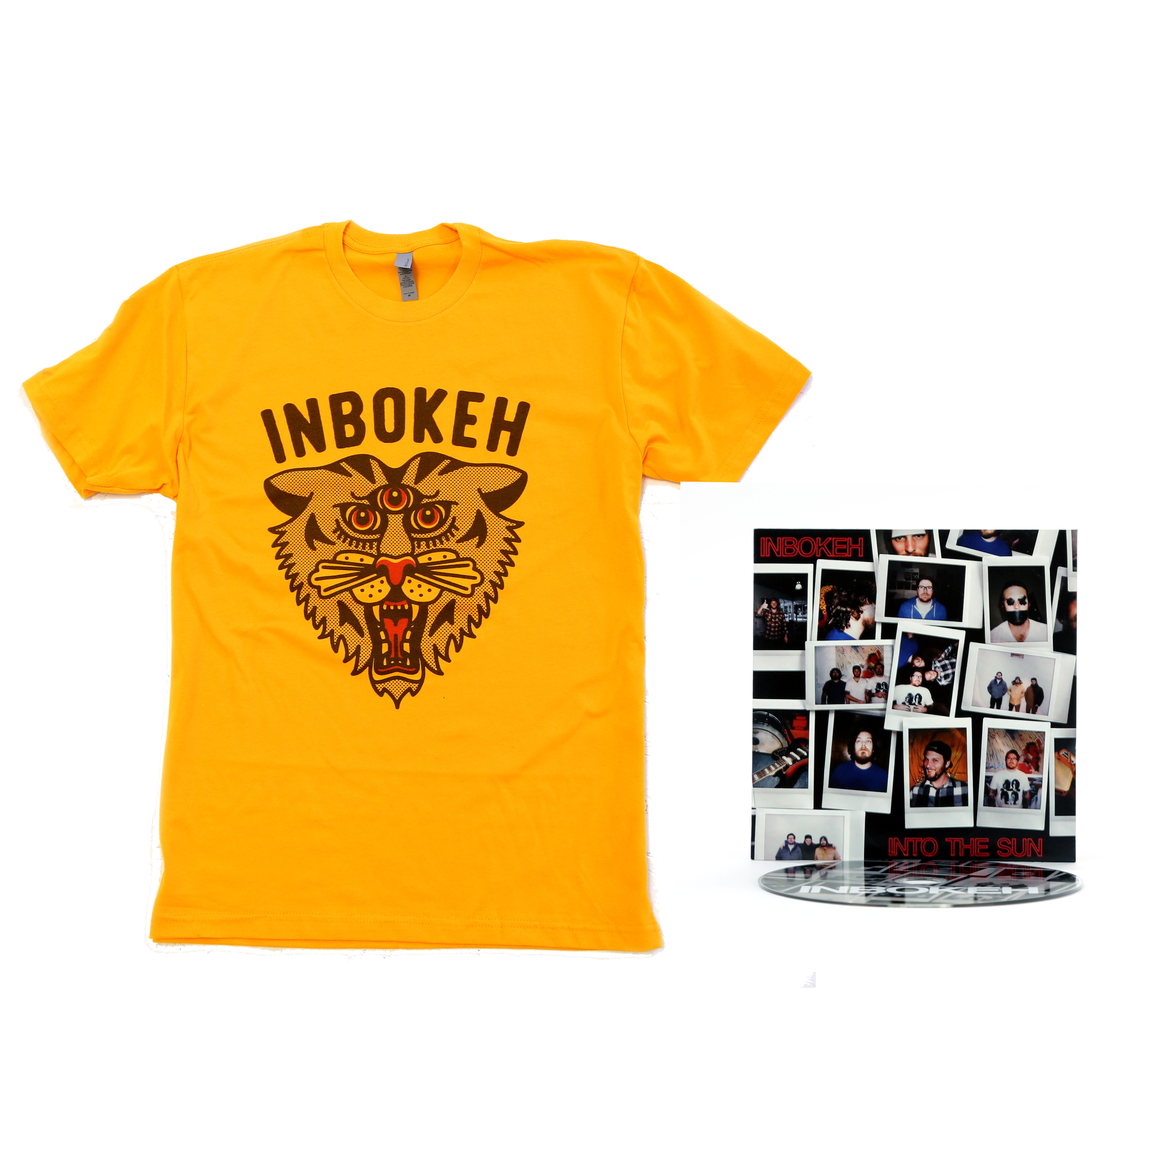 INBOKEH T Shirt and Into The Sun CD Bundle